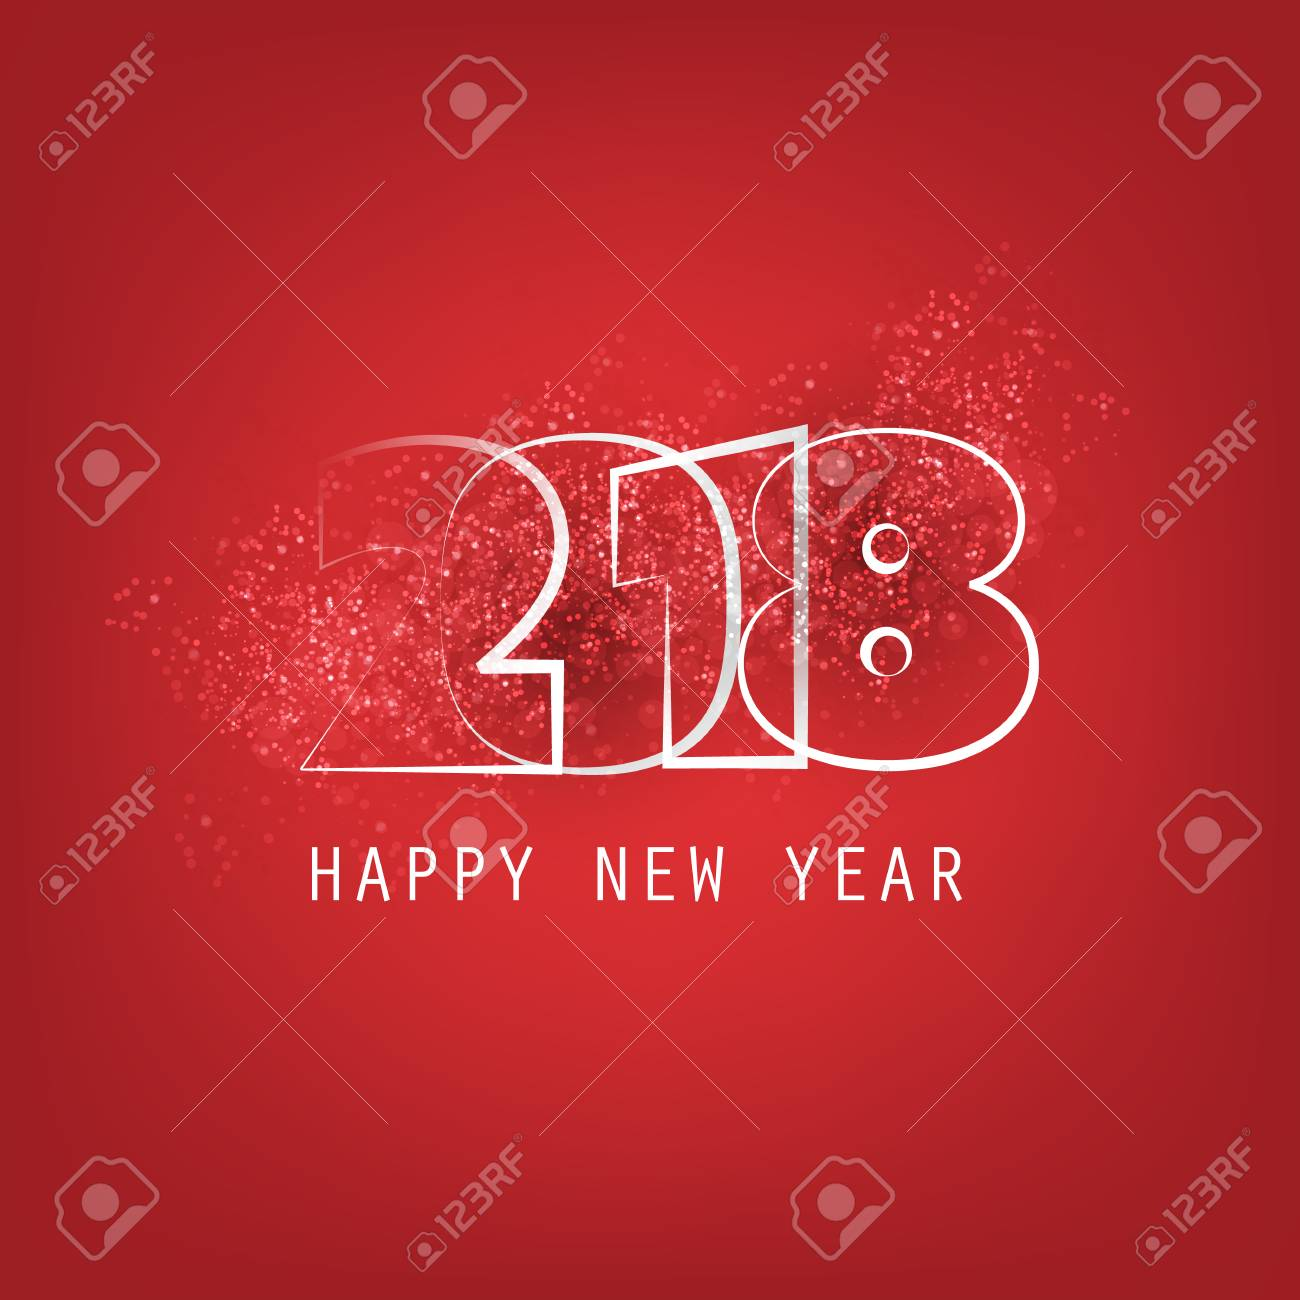 Best Wishes Abstract Modern Style Happy New Year Greeting Card